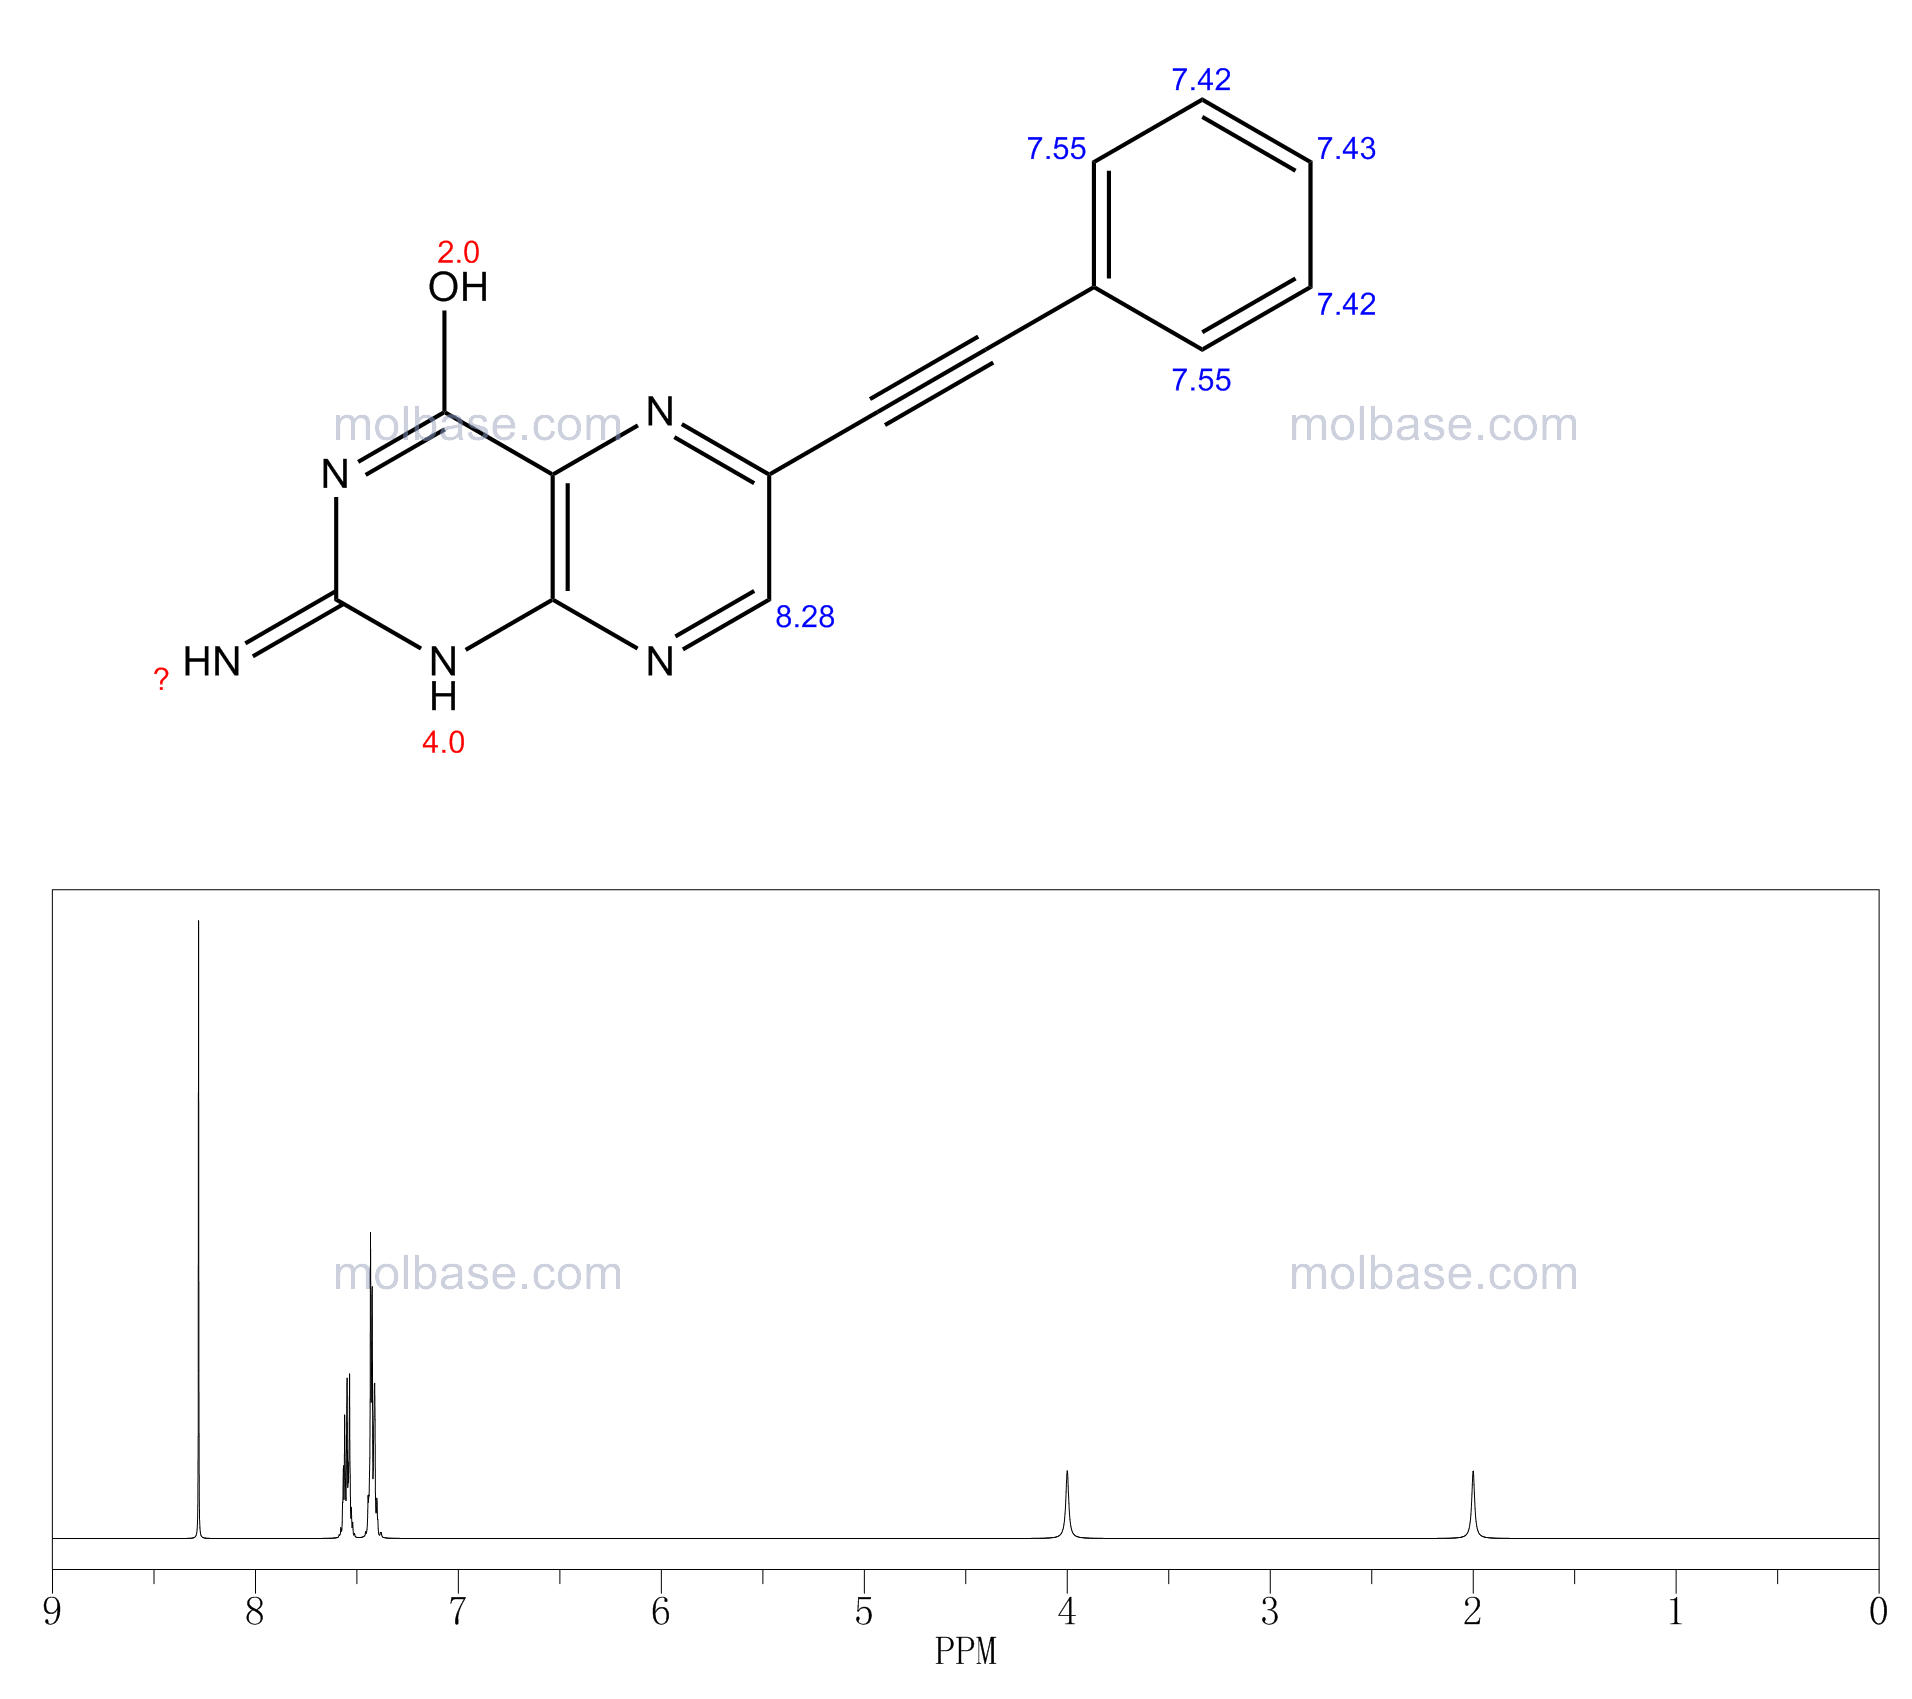 2-amino-6-(2-phenylethynyl)-1H-pteridin-4-one NMR spectra analysis, Chemical CAS NO. 108473-04-7 NMR spectral analysis, 2-amino-6-(2-phenylethynyl)-1H-pteridin-4-one C-NMR spectrum